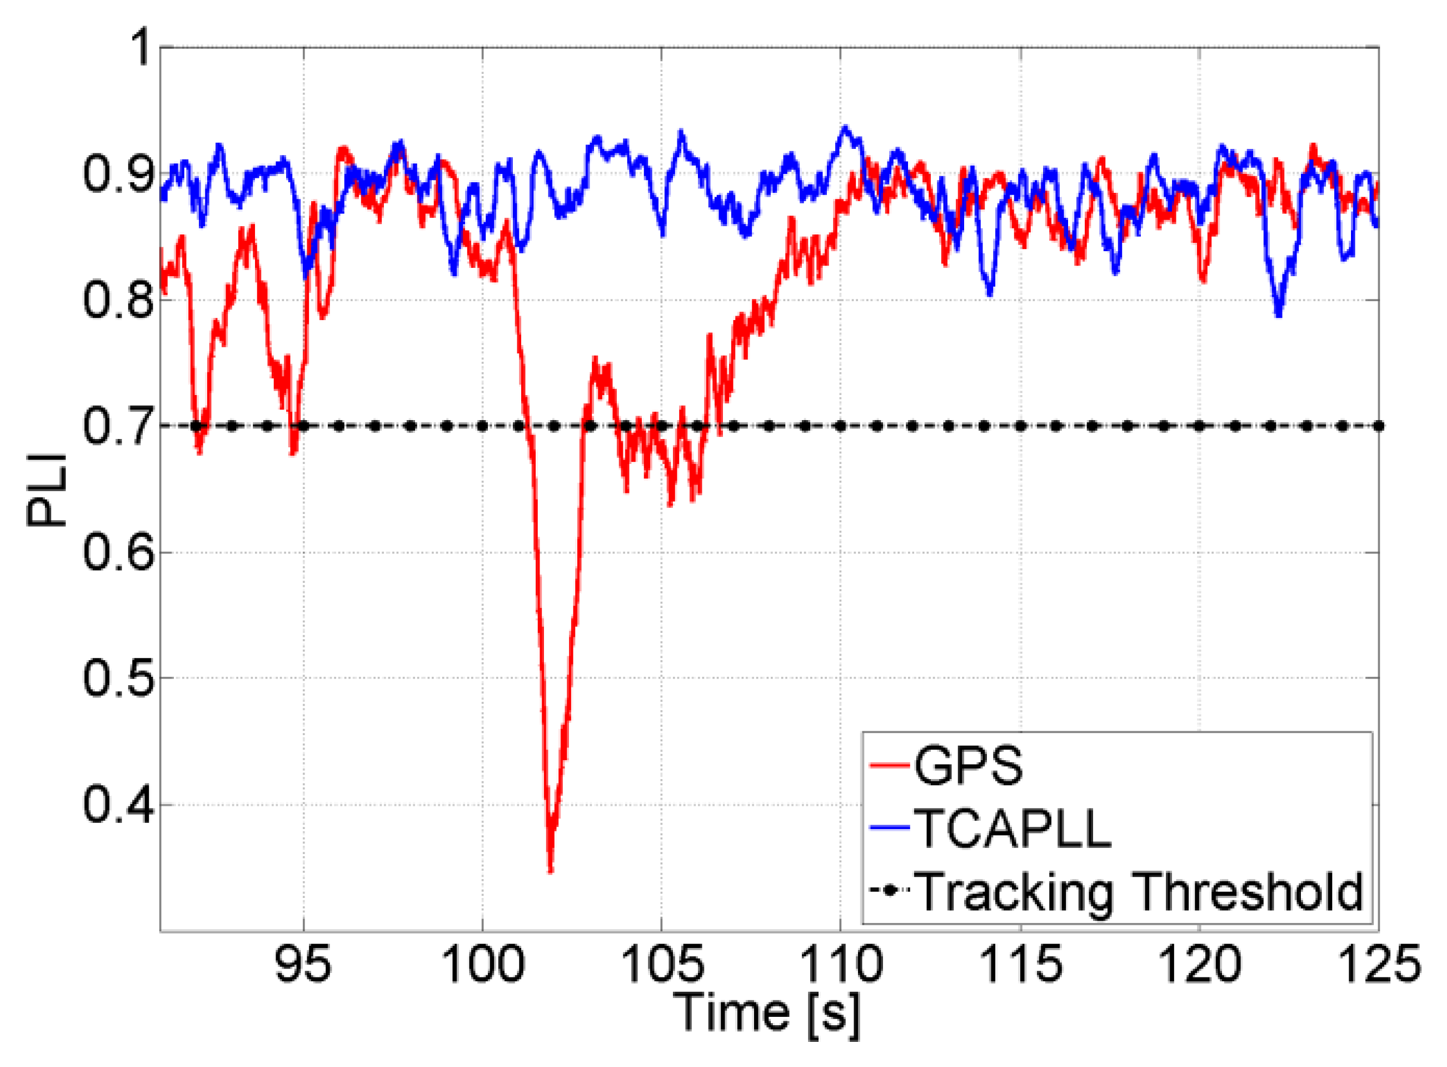 Sensors Free Full Text Implementation And Performance Of A Gps Mems Accelerometer Gyroscope To Improve Car Navigation System 14 03768f12 1024